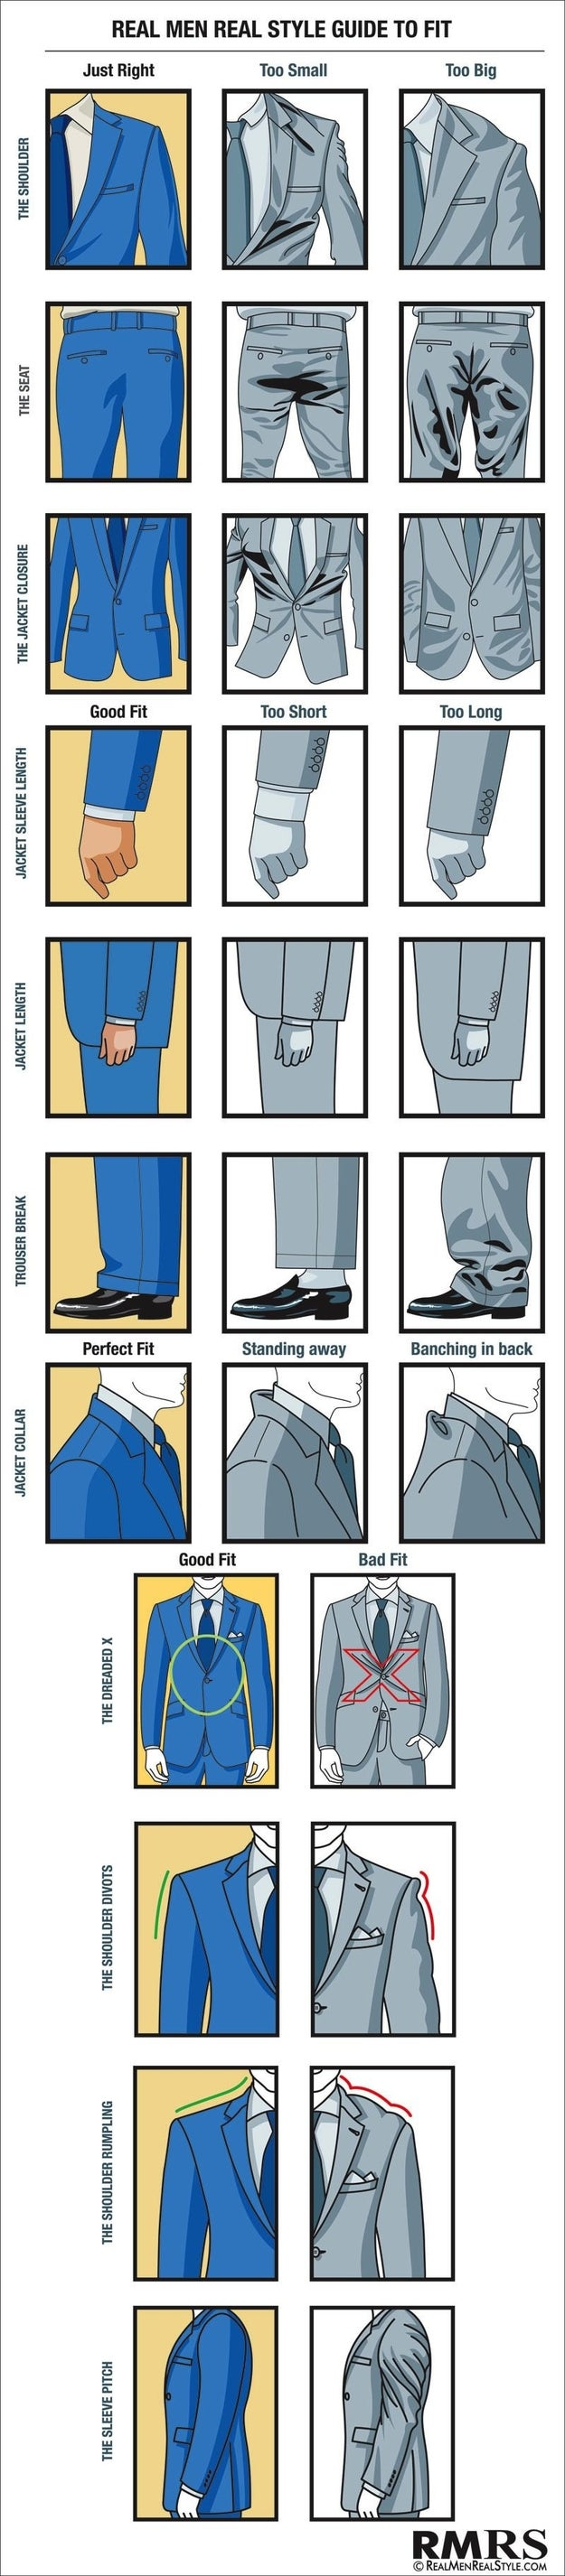 If you're gonna splash out on a suit, better get one that fits.